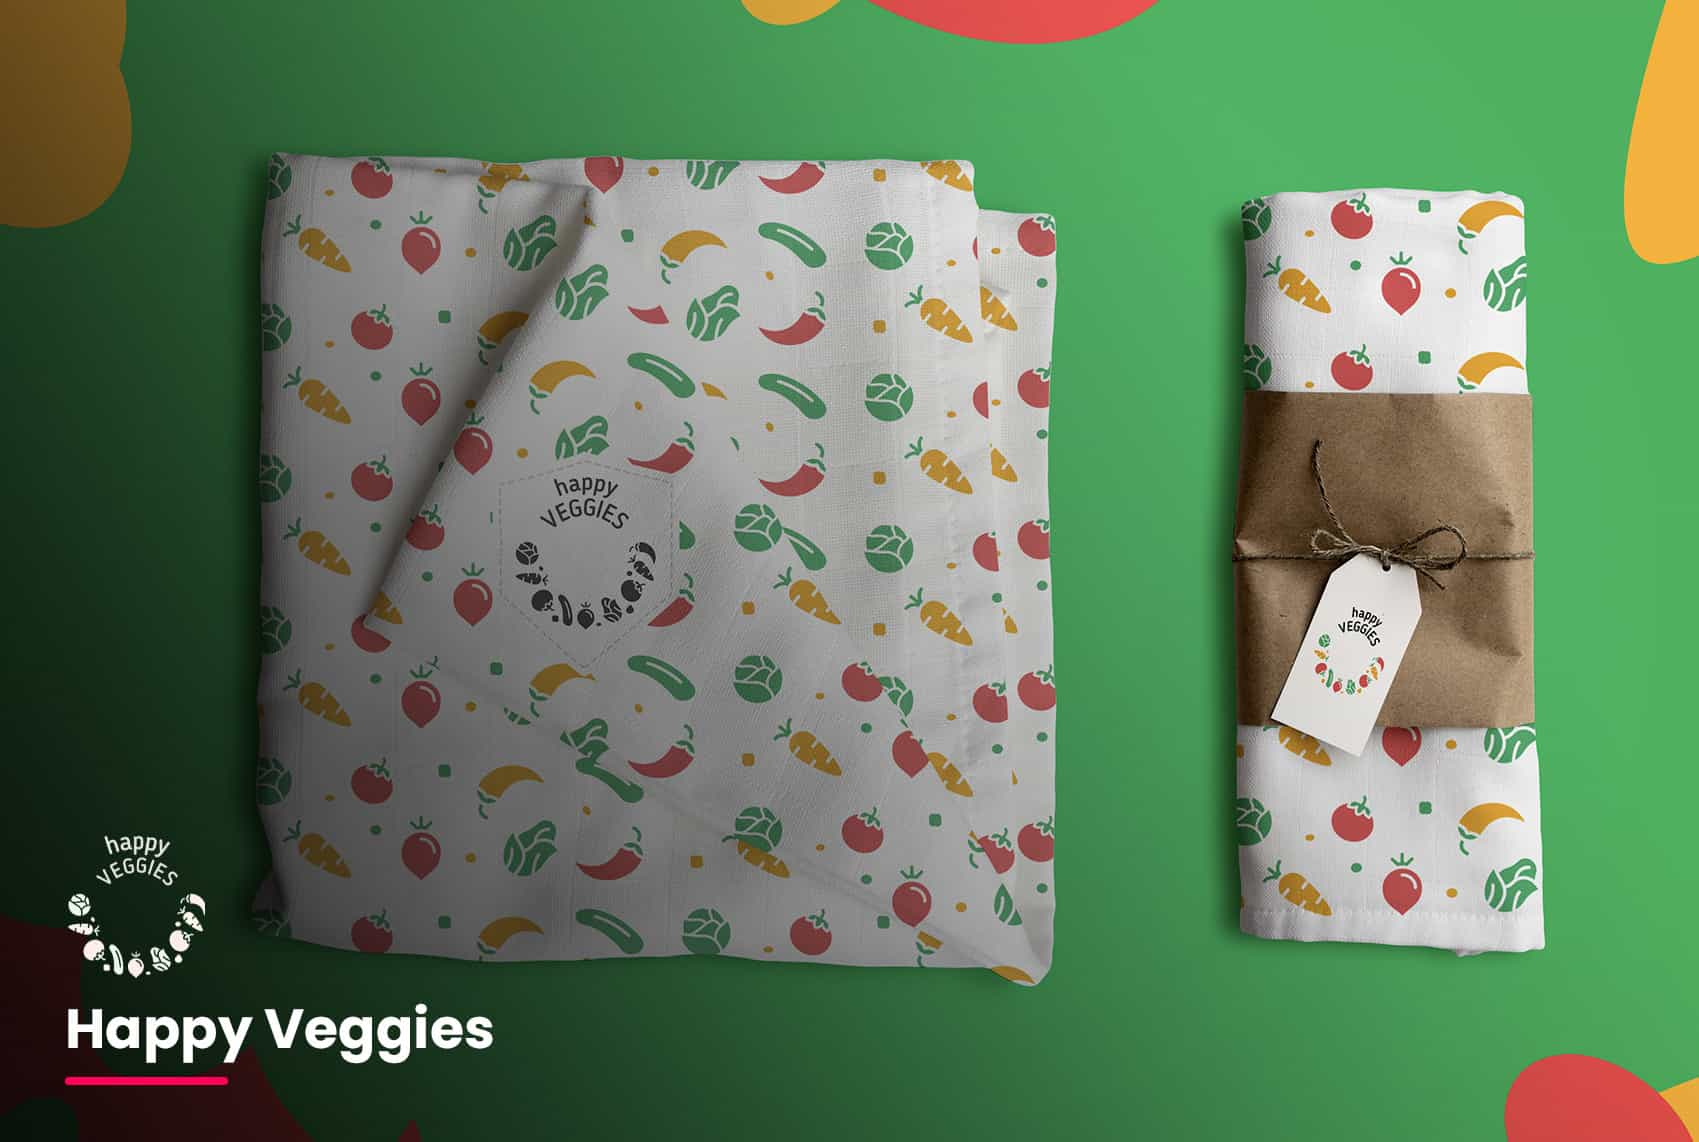 napkins-with-logo-design-commercial-project-creative-digital